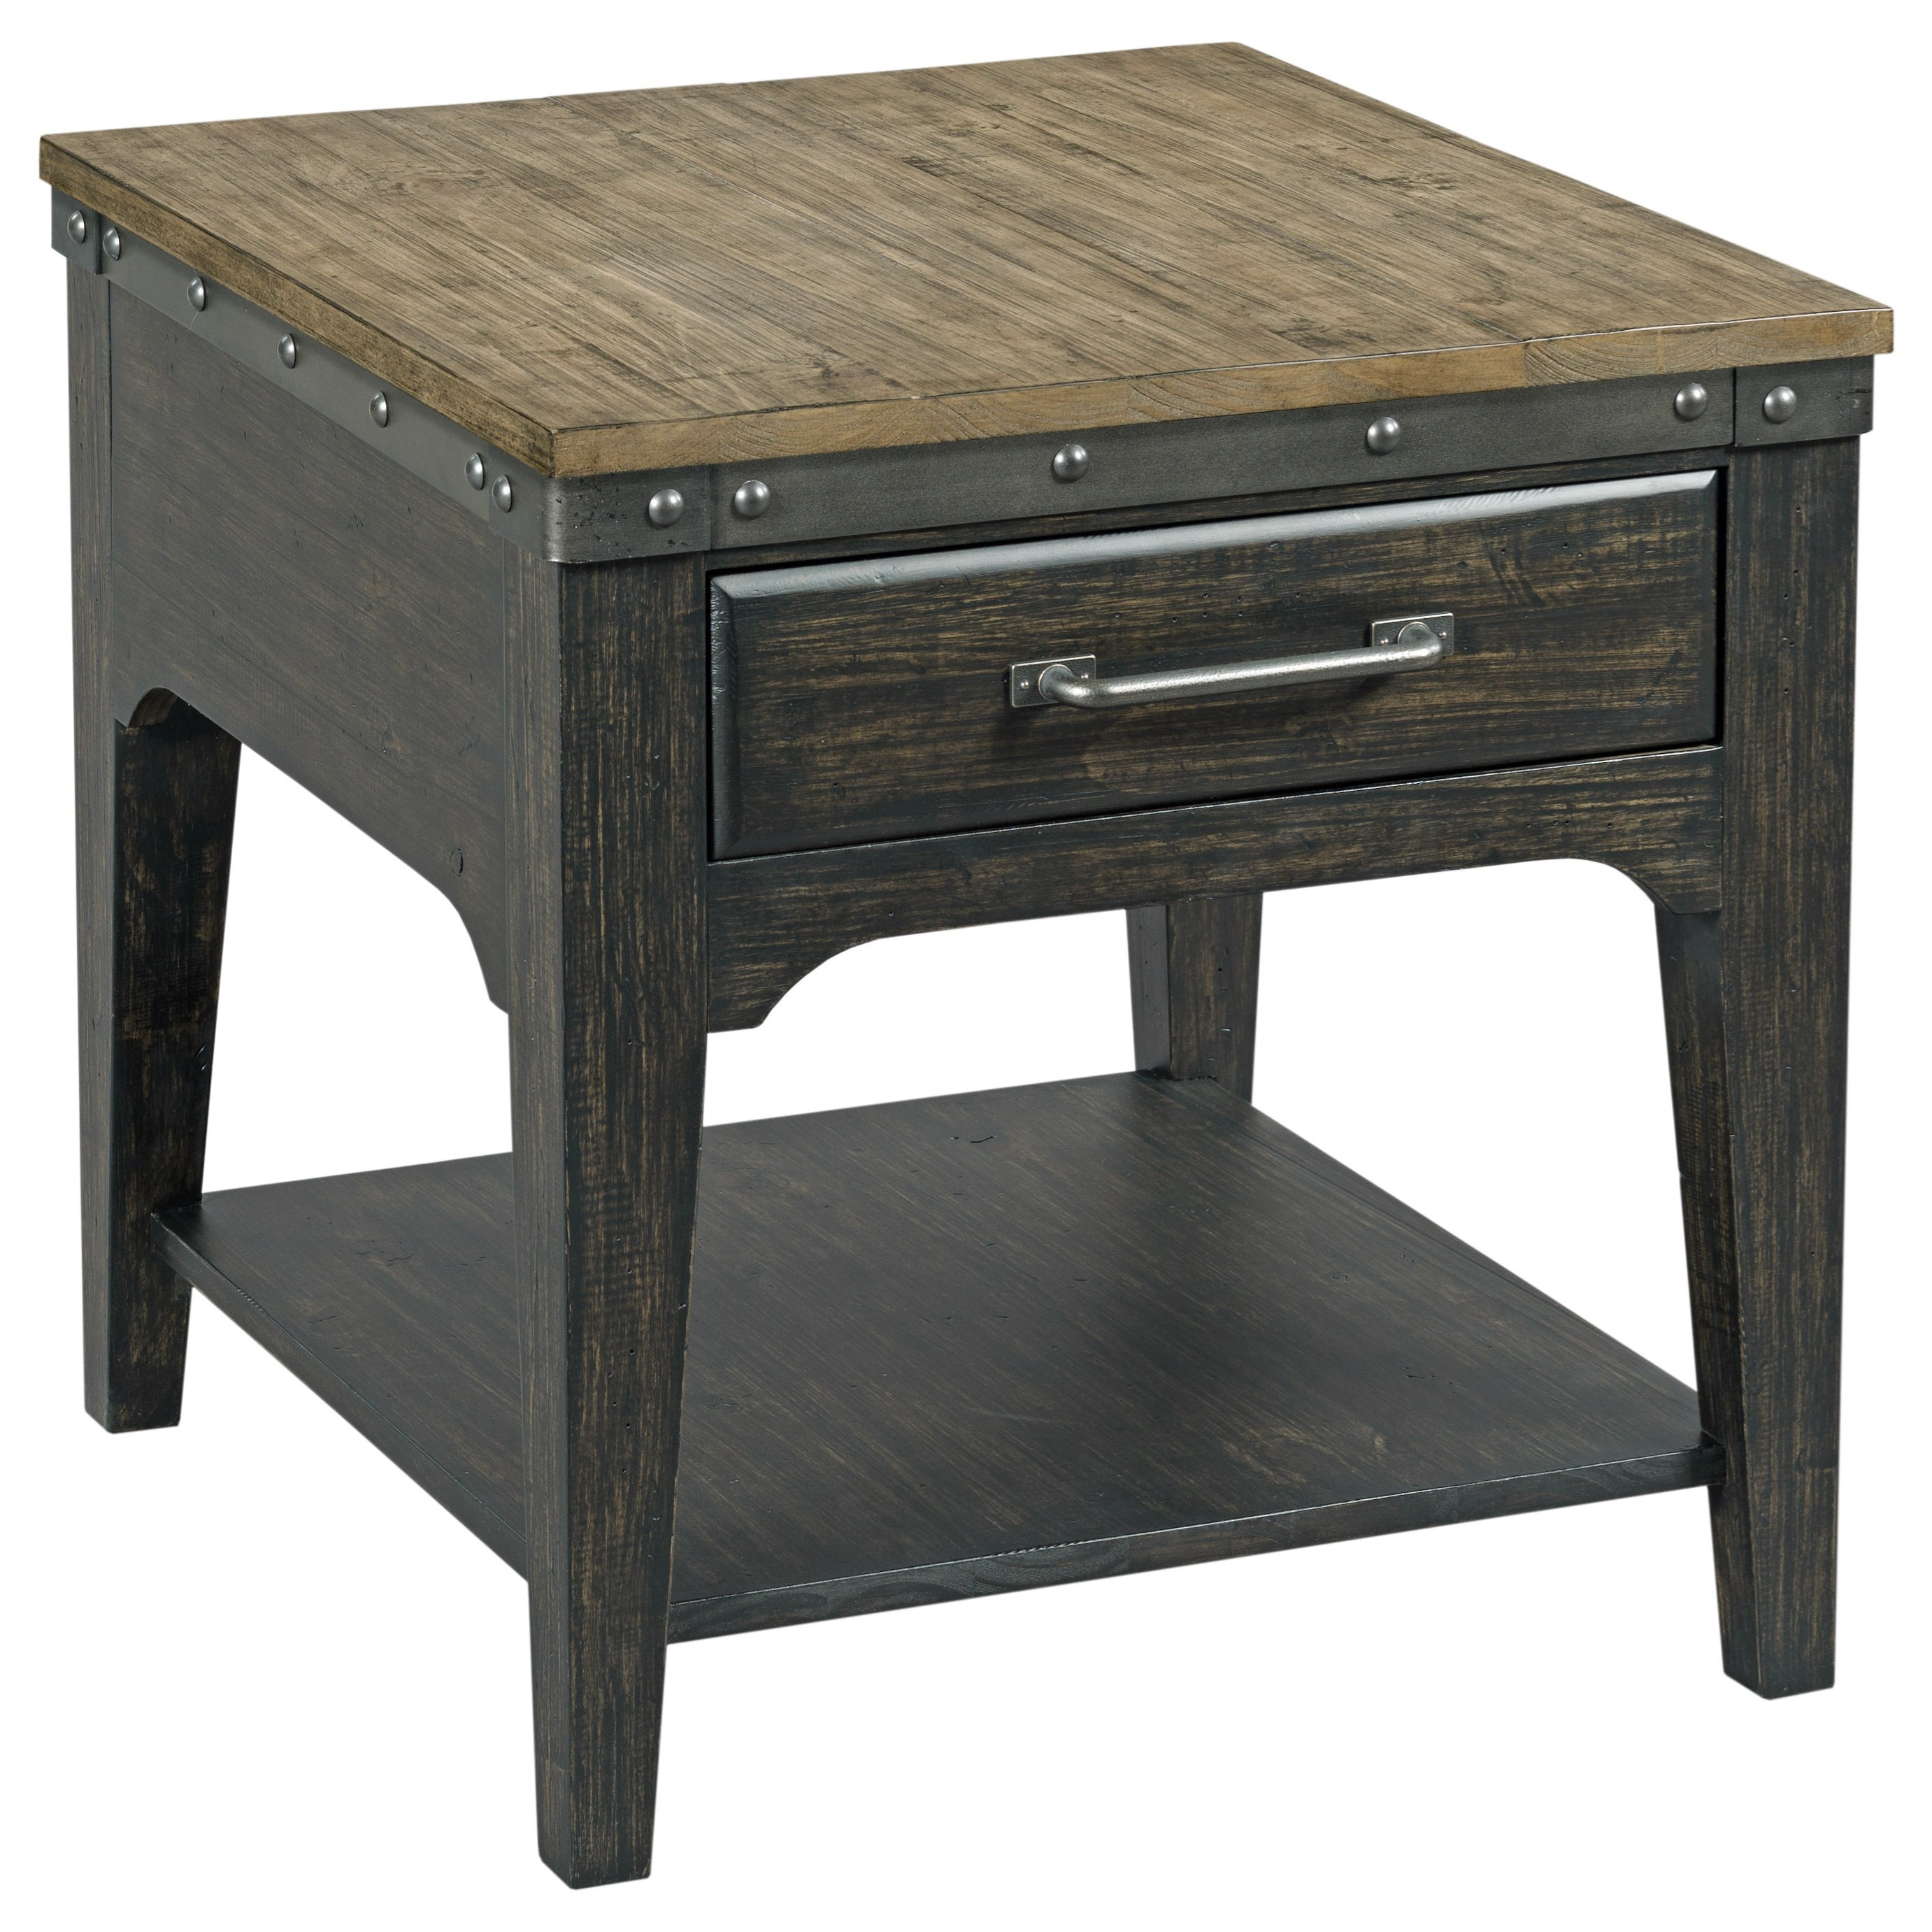 Plank Road Artisans Rectangular Drawer End Table        by Kincaid Furniture at Darvin Furniture